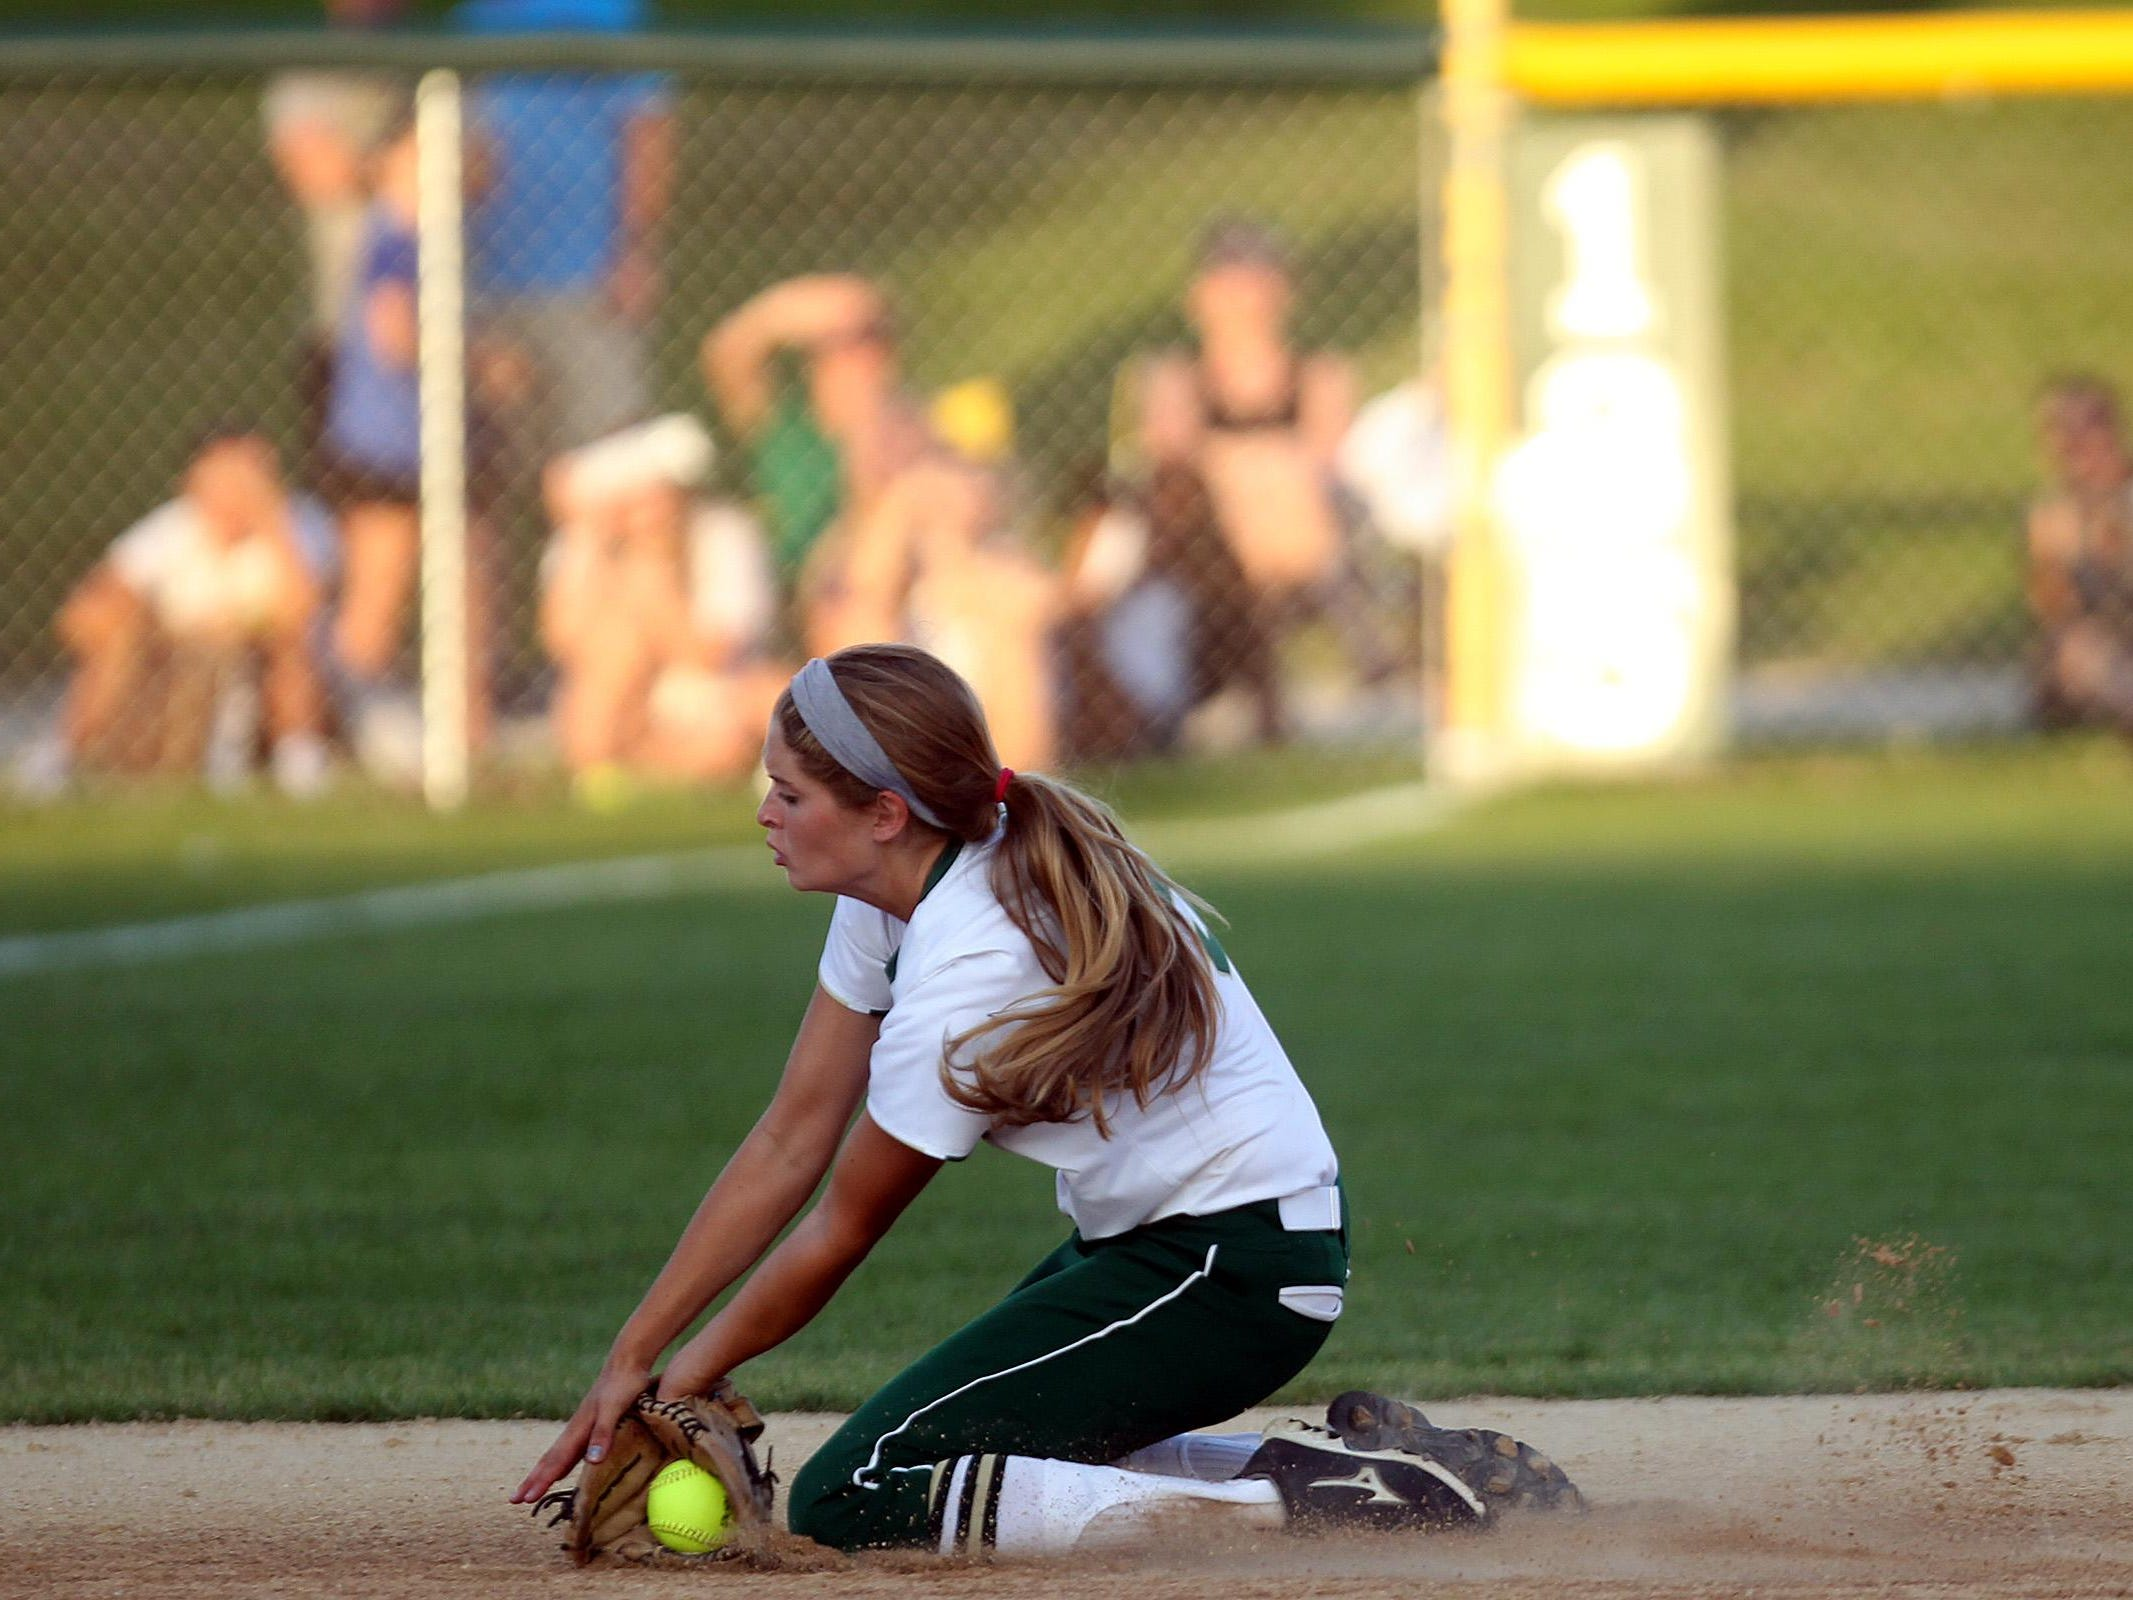 West High's Grace Tafolla stops a ground ball during the Women of Troy's Class 5A regional championship game against Ankeny at West High on Tuesday, July 14, 2015. Ankeny won, 3-1, to head to state. David Scrivner / Iowa City Press-Citizen